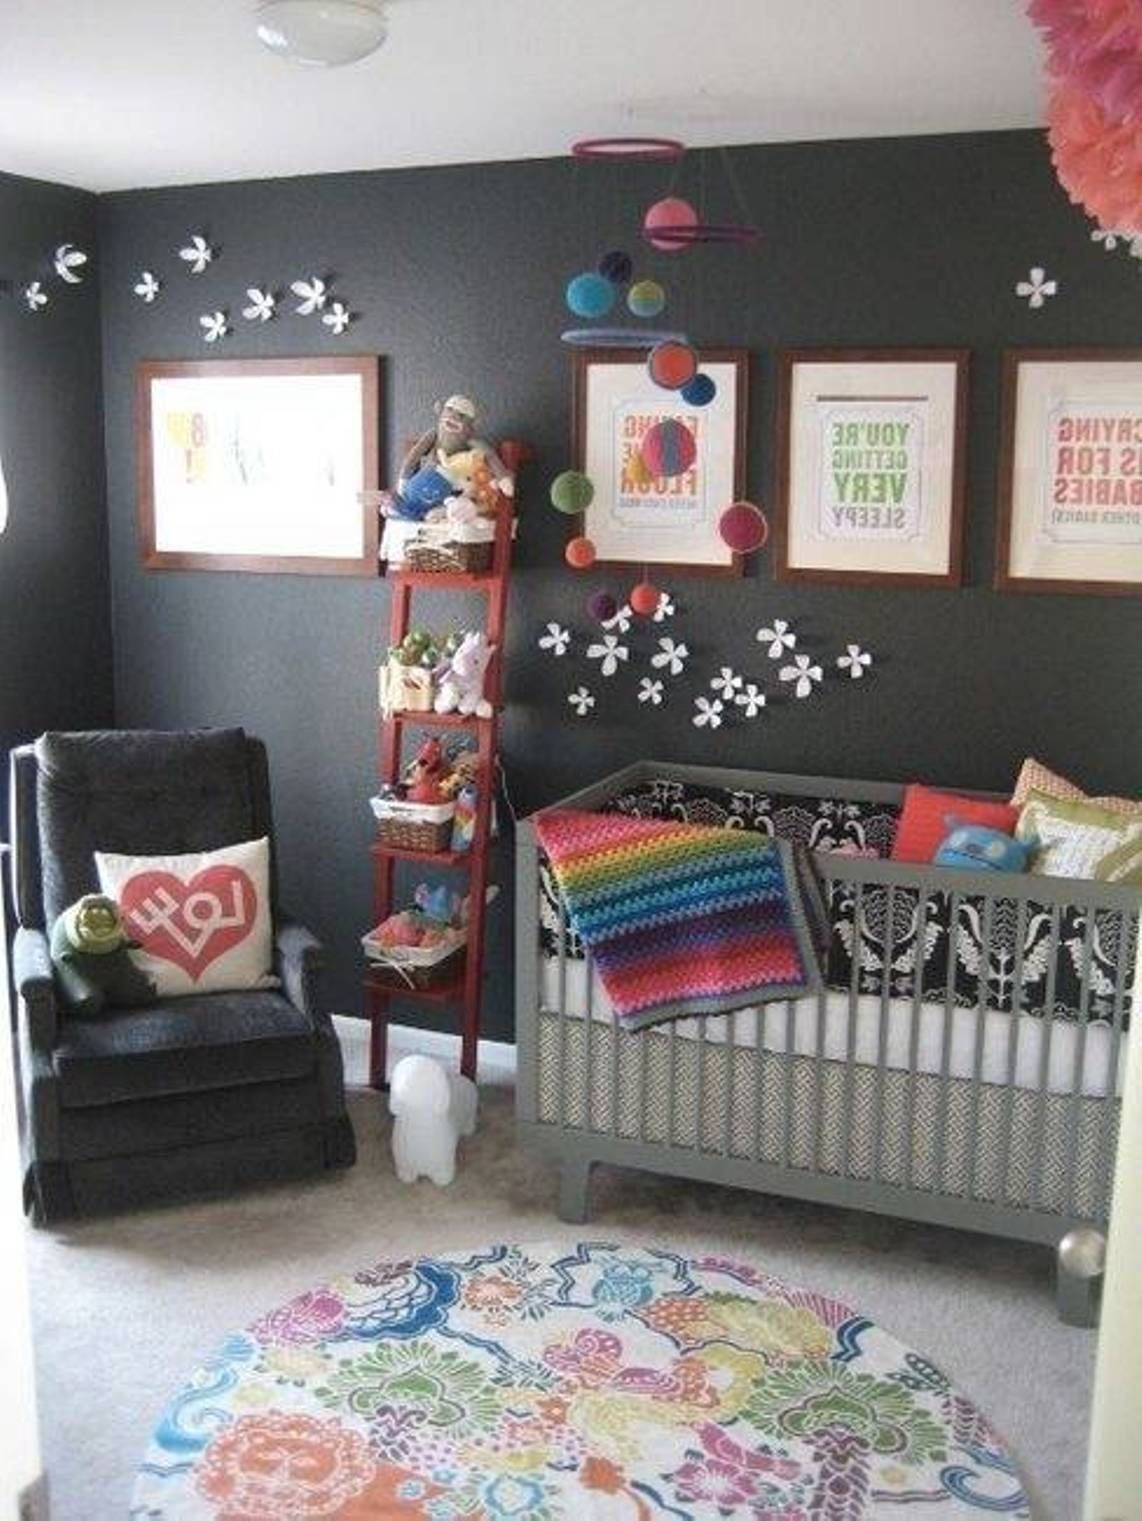 Creative nursery decor baby nursery decor gallery repostudio